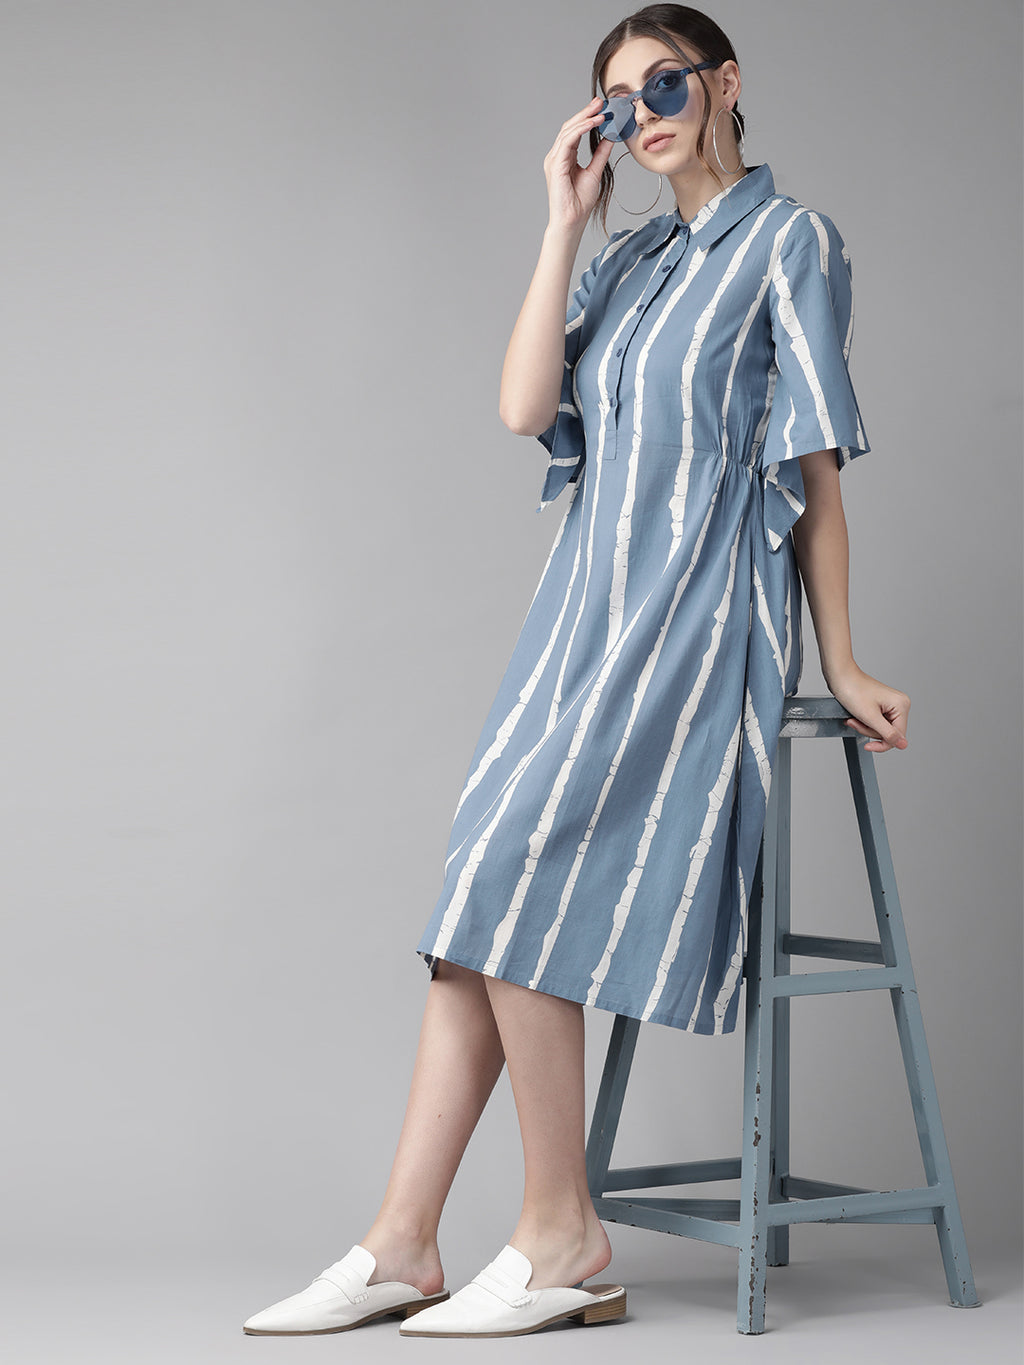 Blue & White Striped Shirt Dress (Fully Stitched)